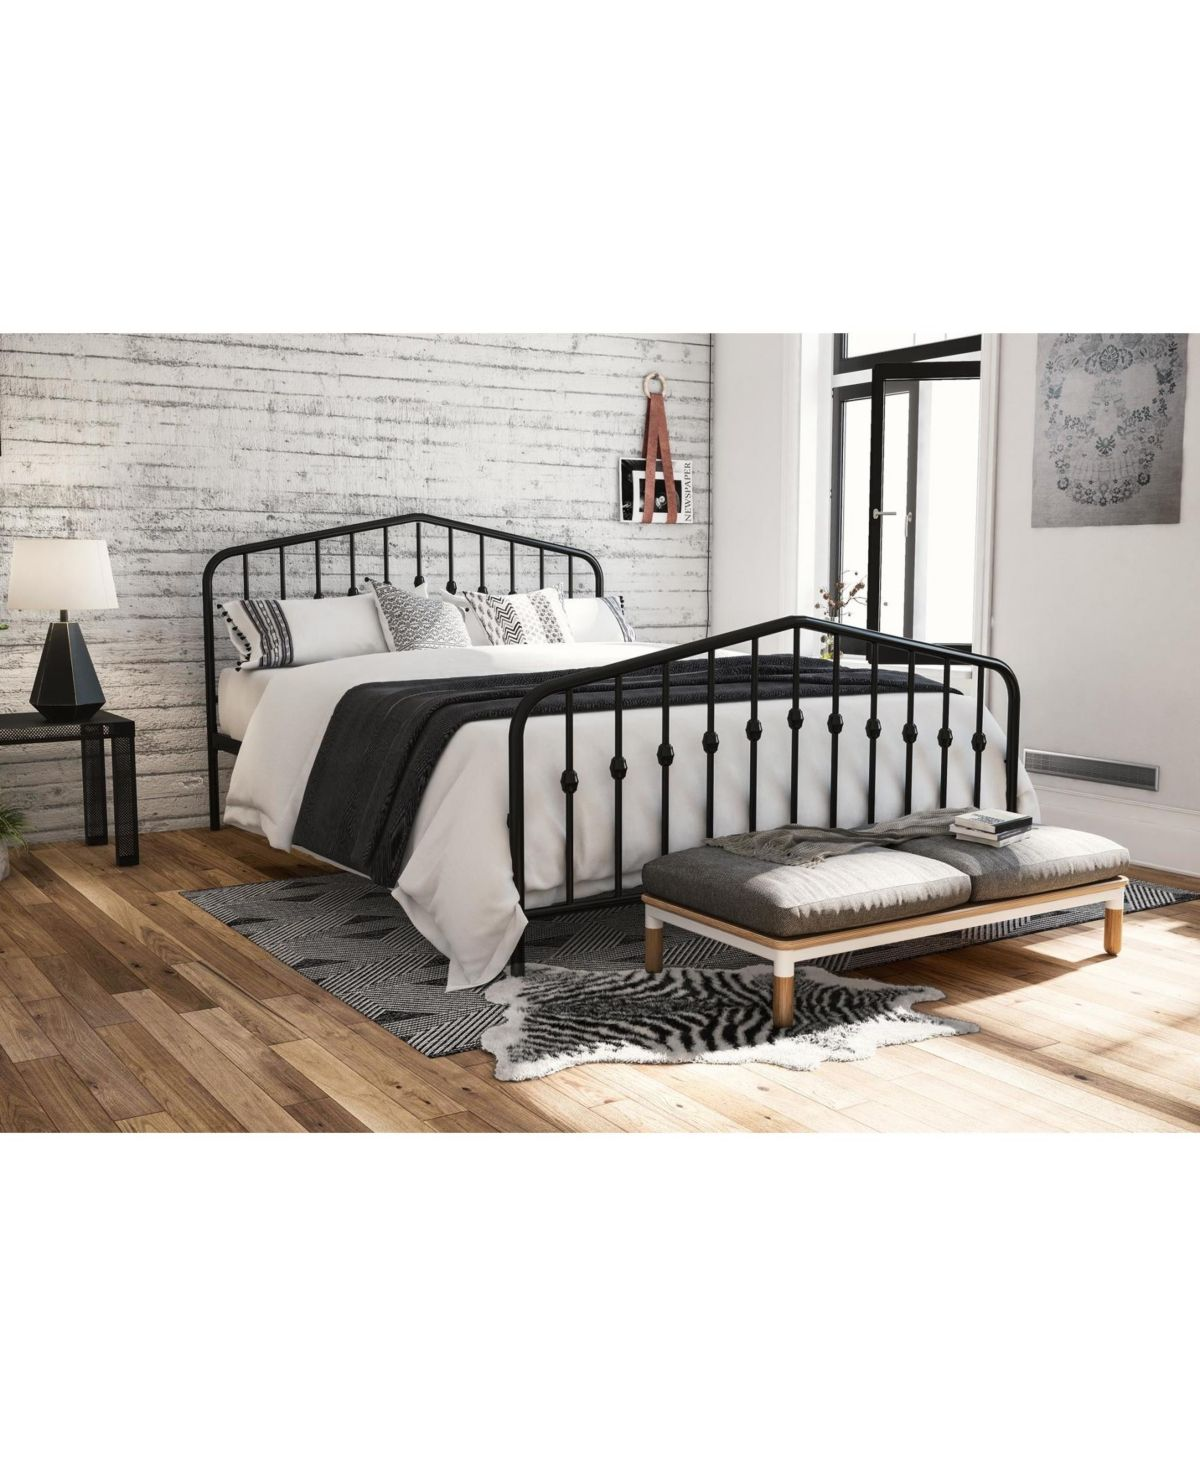 Novogratz Bushwick Full Metal Bed Black Furniture